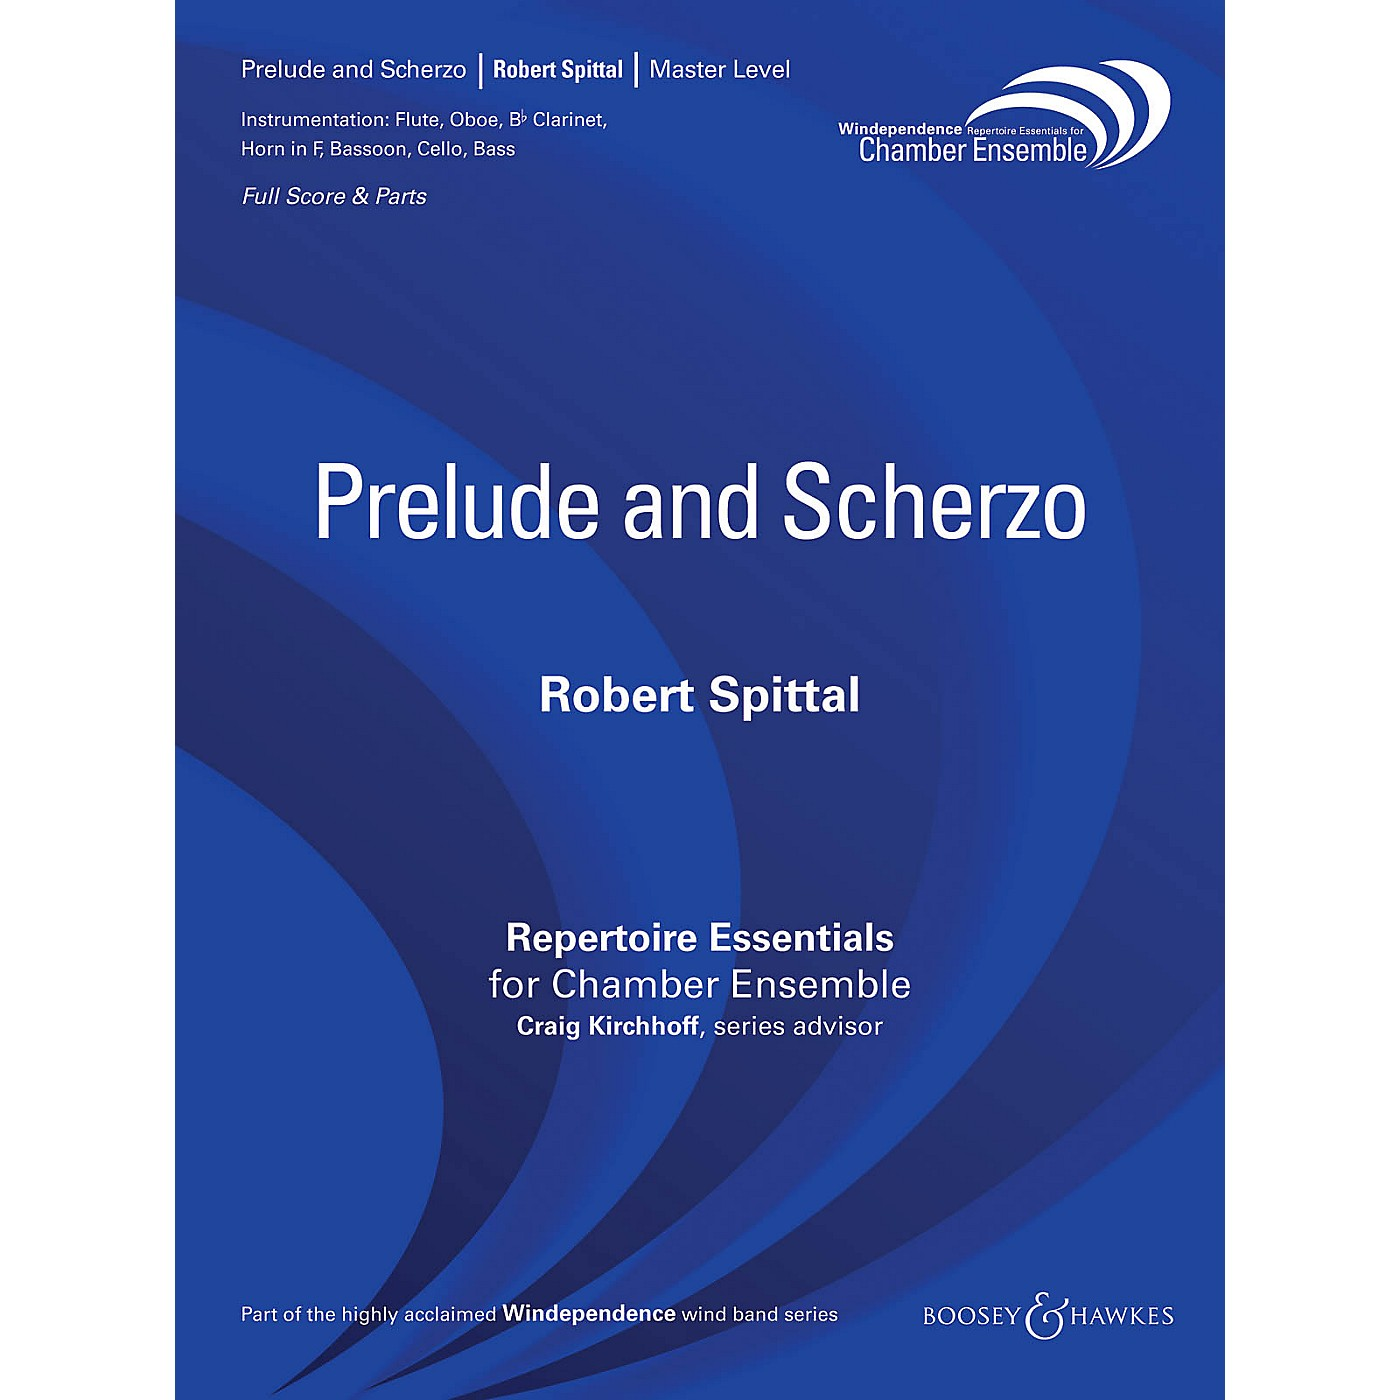 Boosey and Hawkes Prelude and Scherzo Windependence Chamber Ensemble Series by Robert Spittal thumbnail